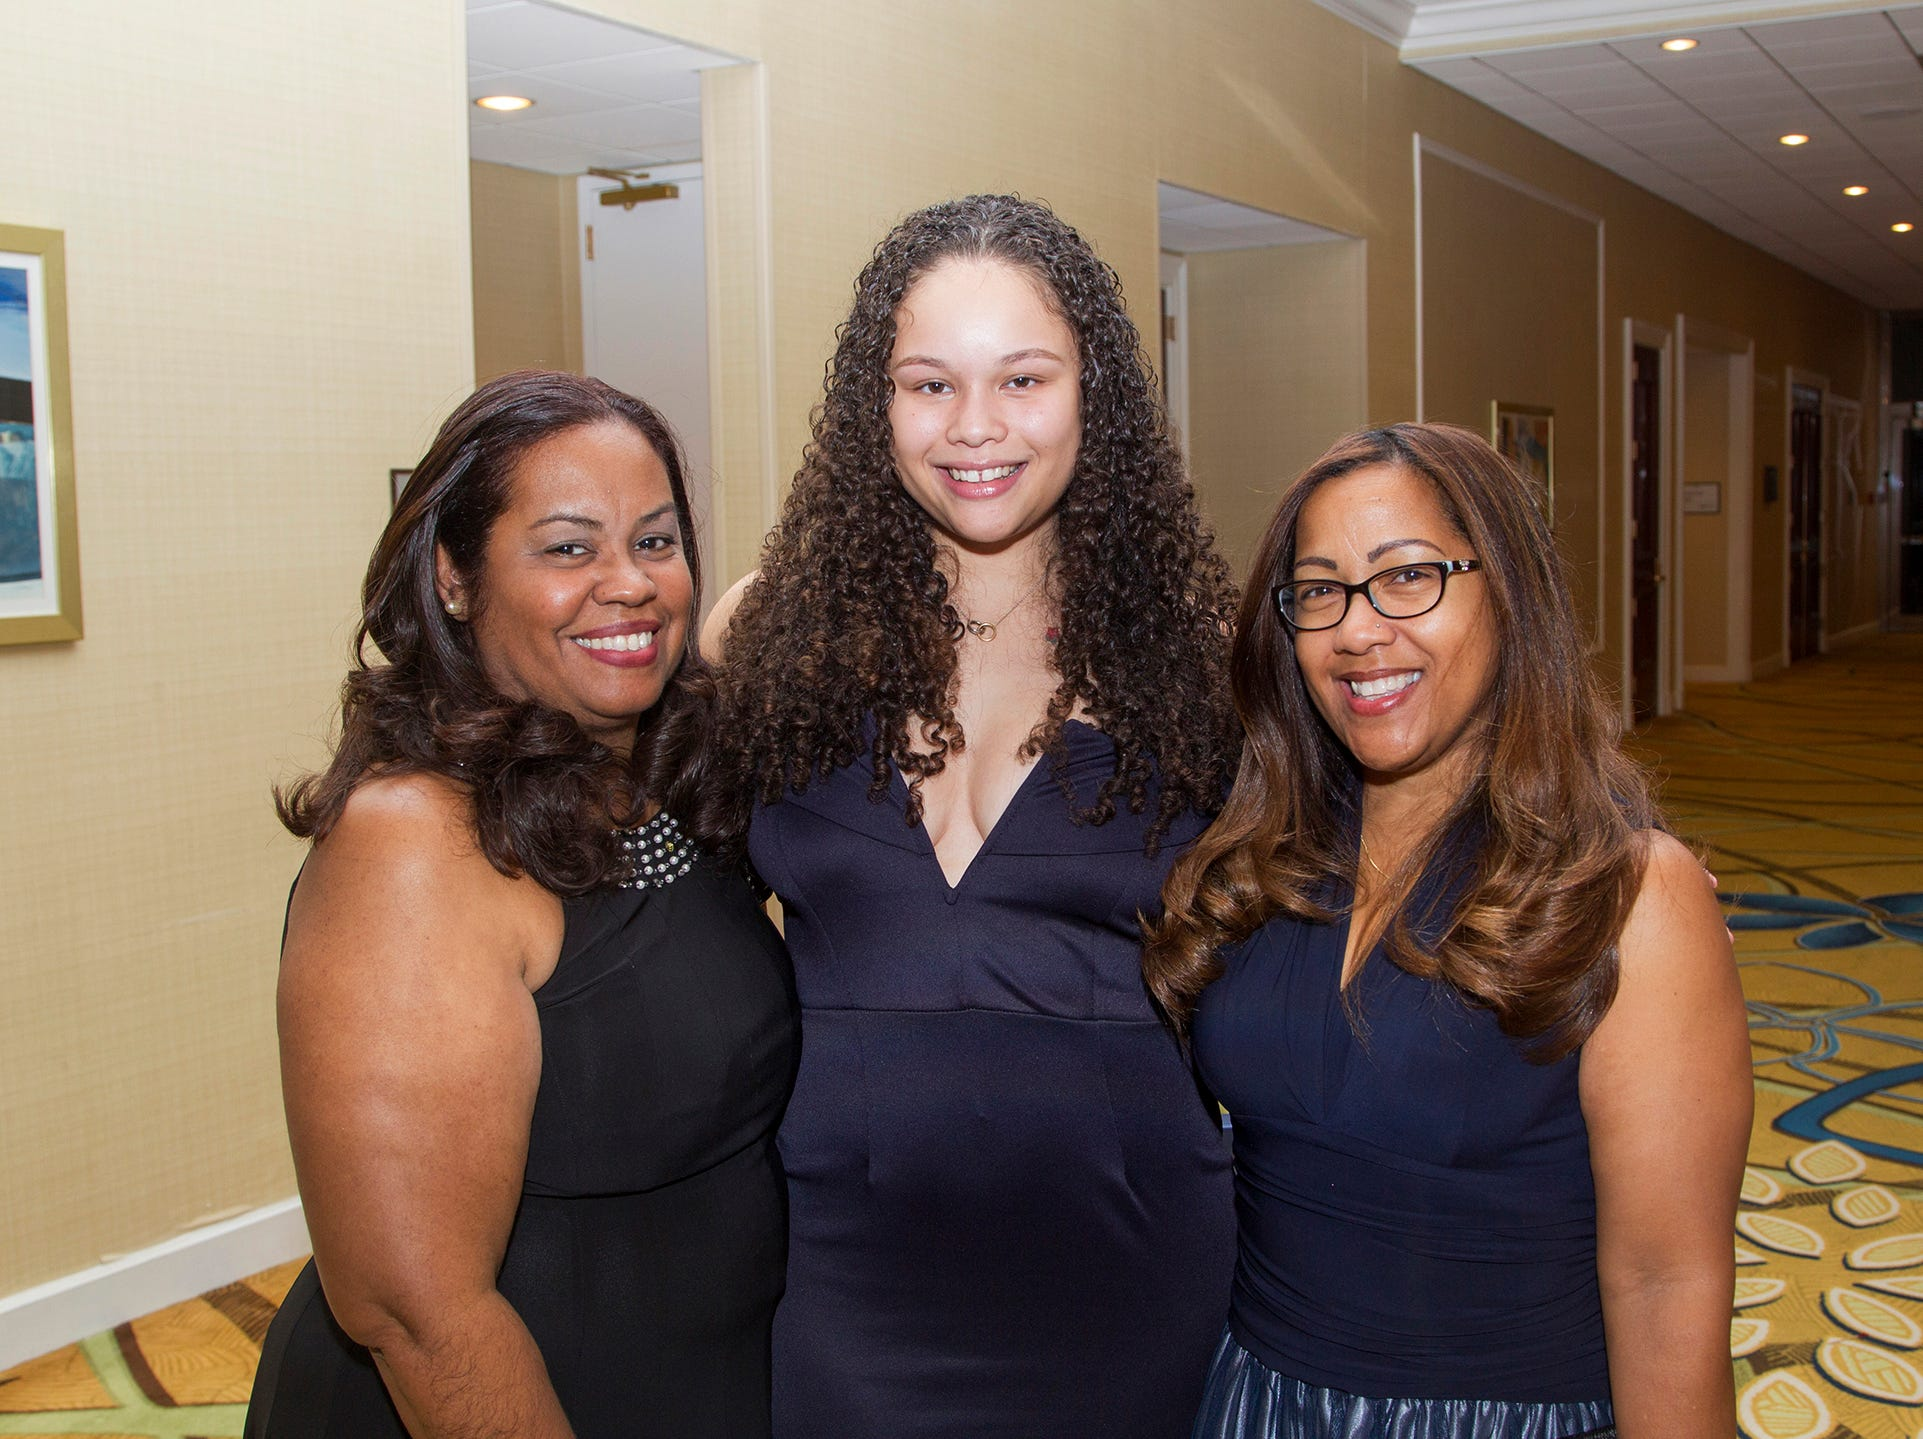 Beatrice Lopez, Kailey Veras, Rosa Veras. Jessie Banks Foundation holds 16th annual Scholarship Awards Gala in Teaneck. 11/09/2018